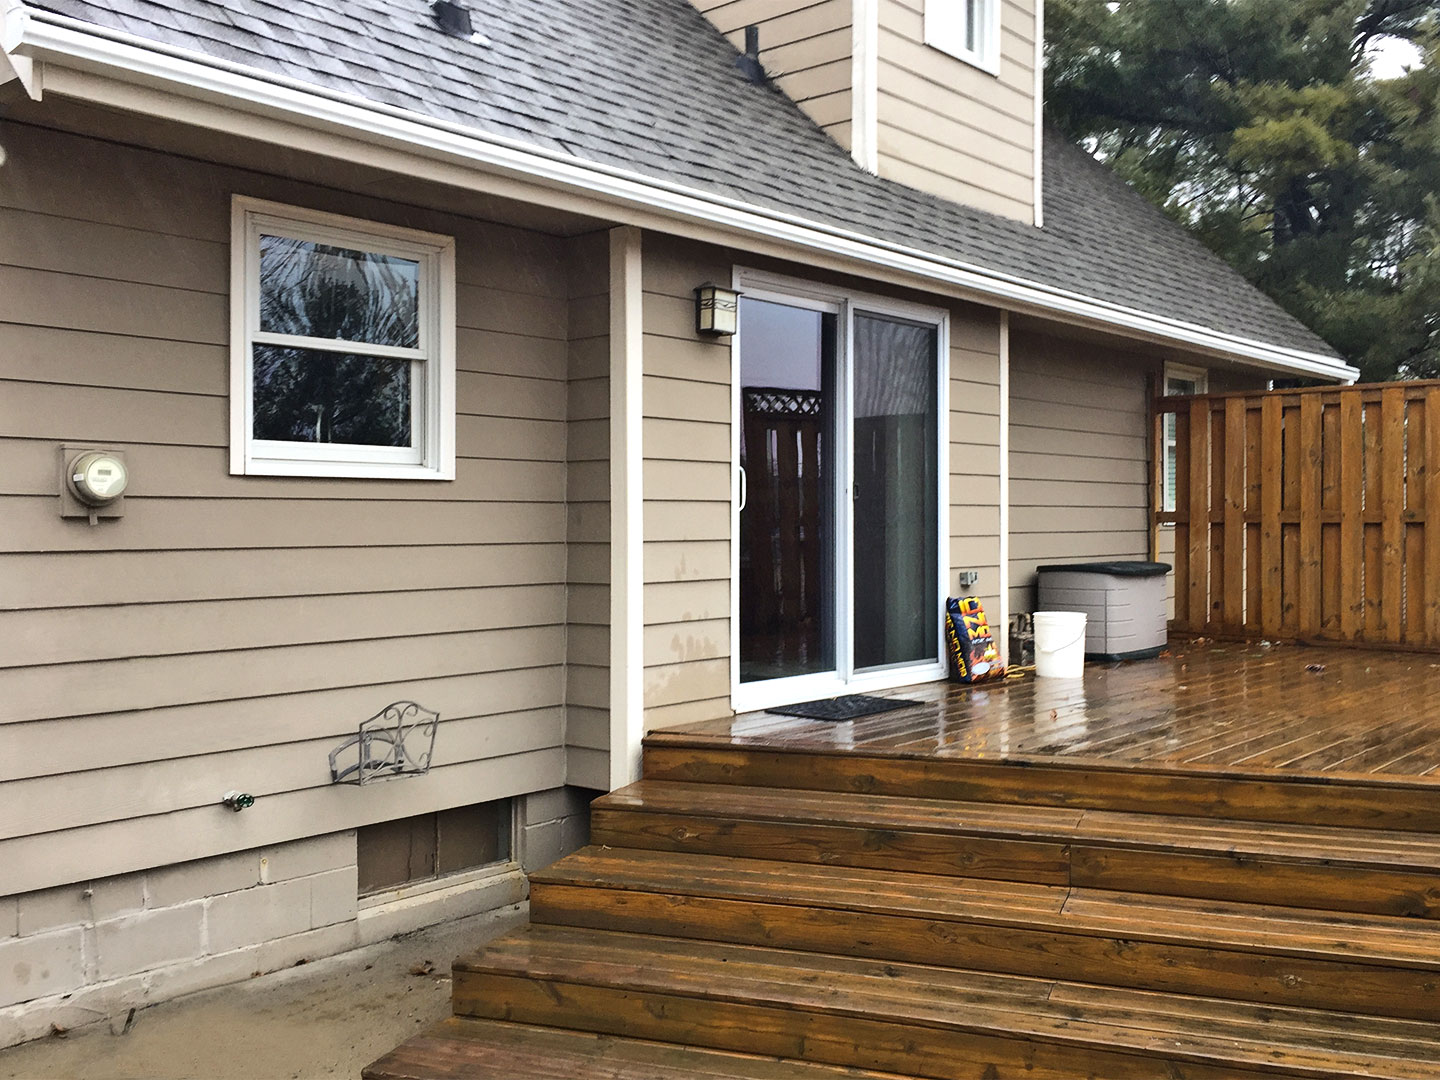 LeafGuard® is protecting the outdoor living space from heavy rainfall by guiding rainwater away from the Johnston home.